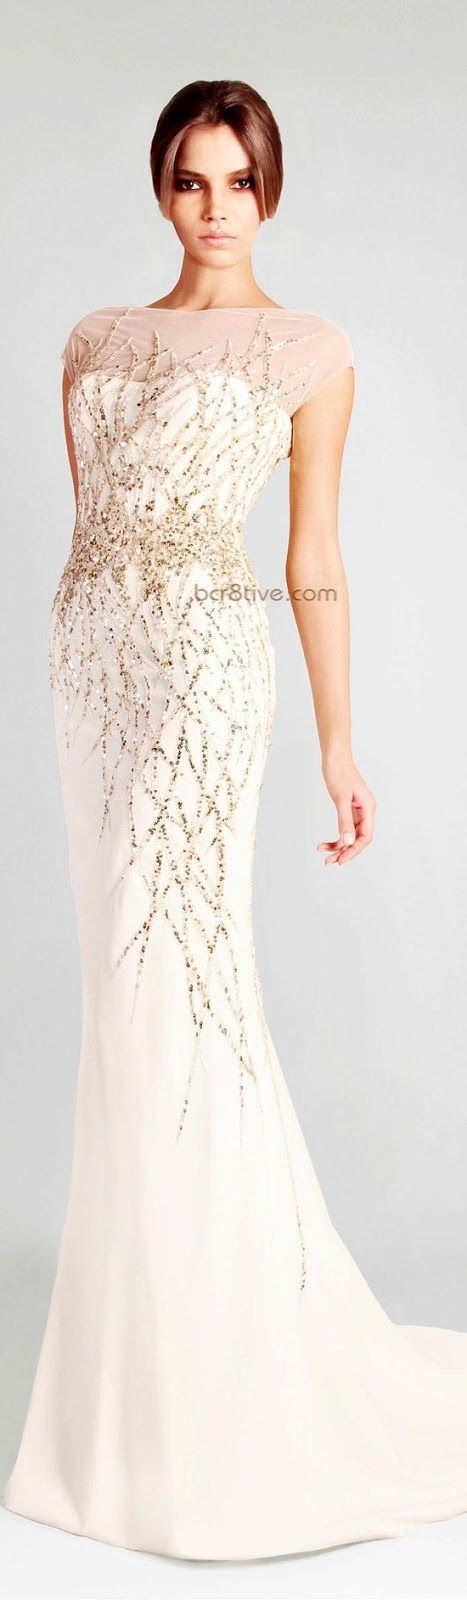 Simple and beautiful white long gown for ladies... click on picture to see more